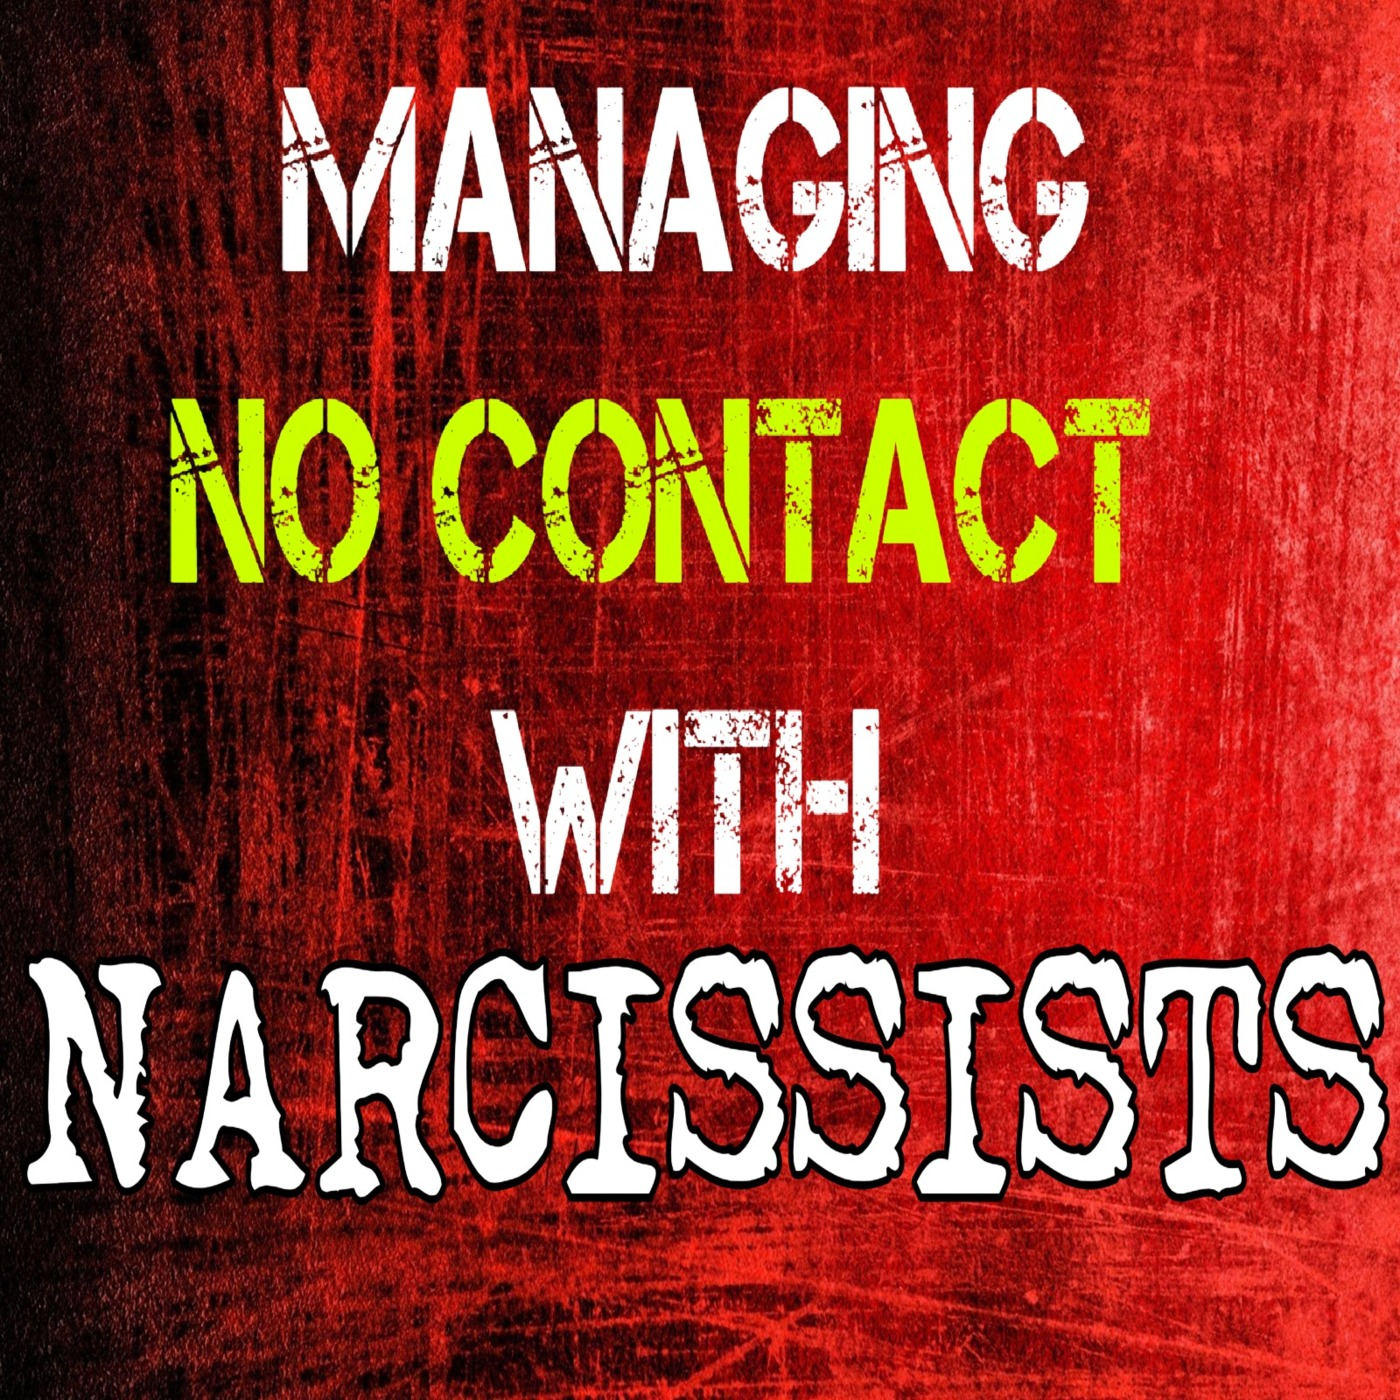 Best Episodes of Understanding Today's Narcissist